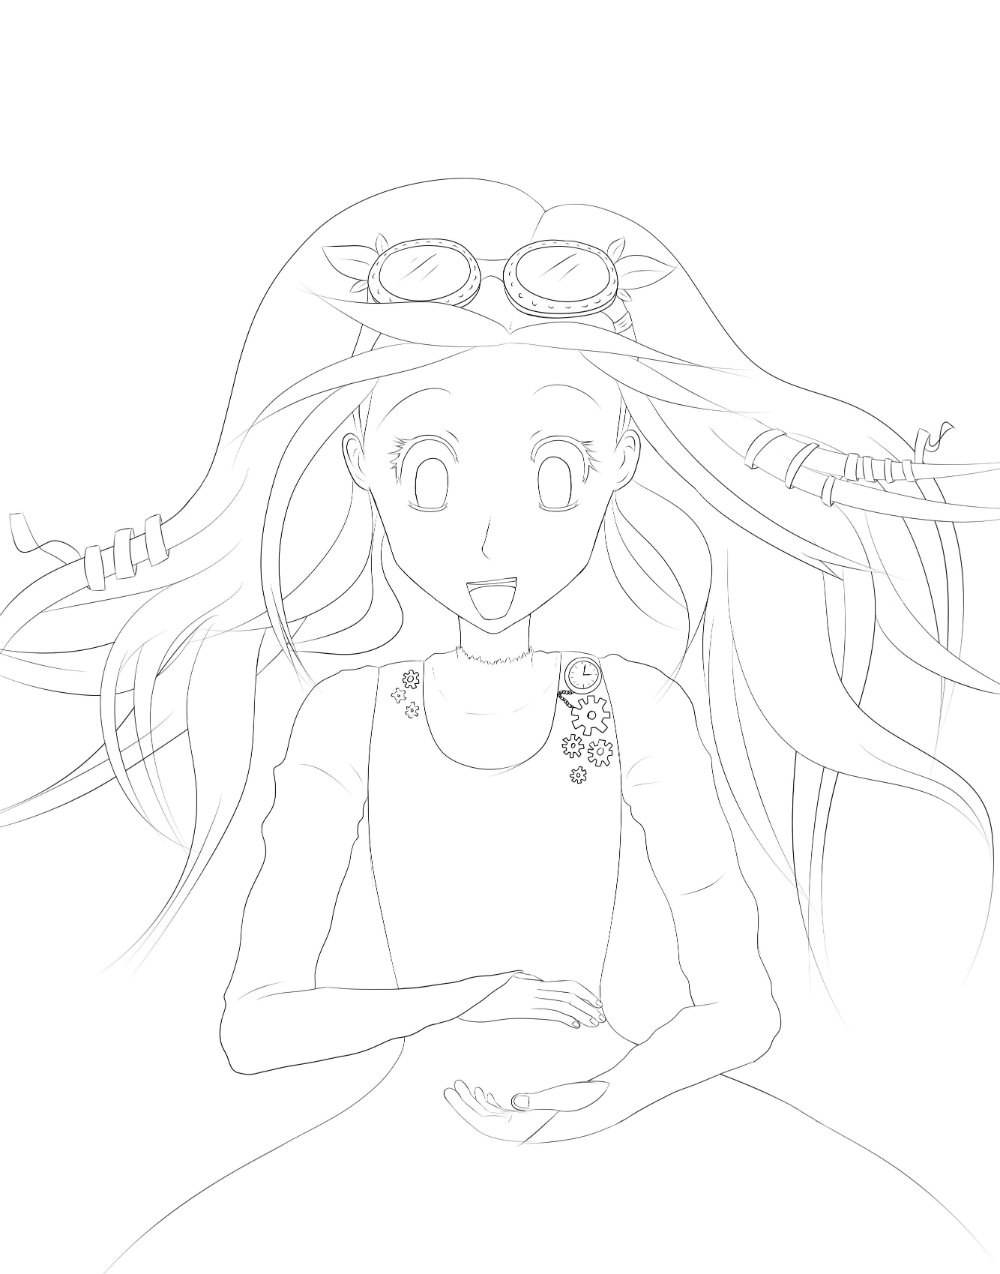 1000x1274 Steampunk Girl Lineart On Paint Tool Sai Cricket's Drawings